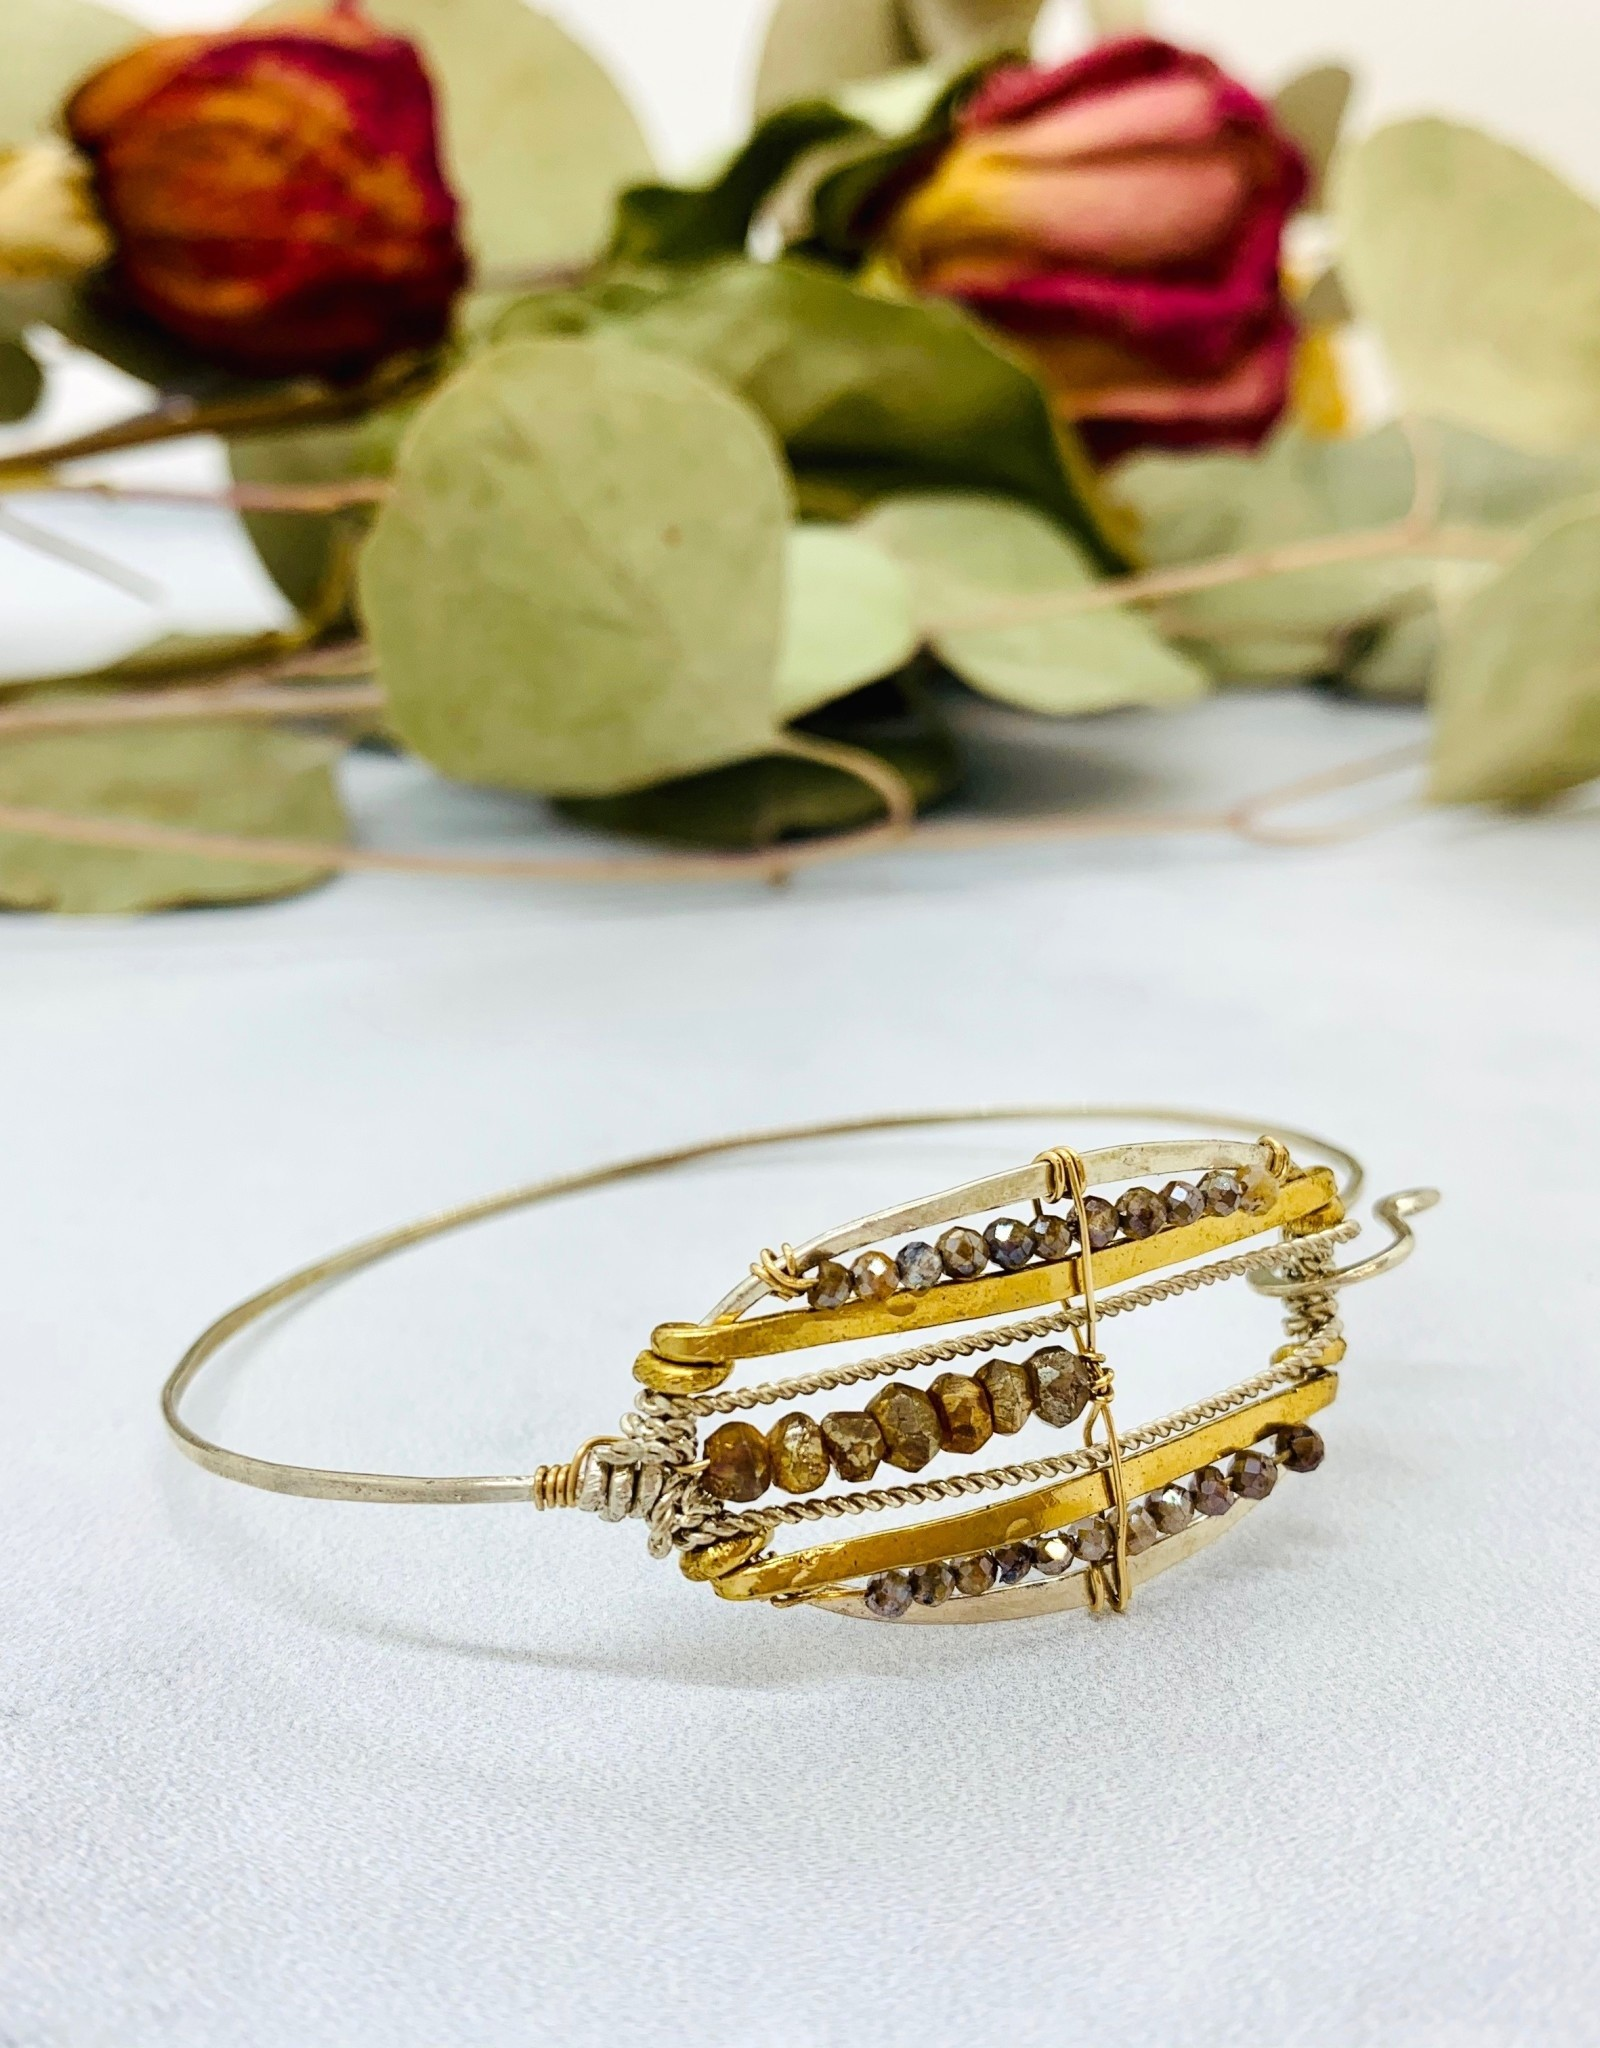 Handmade Bangle Bracelet with Pyrite Plaid Handformed brass and Sterling Silver Marquis Shape.